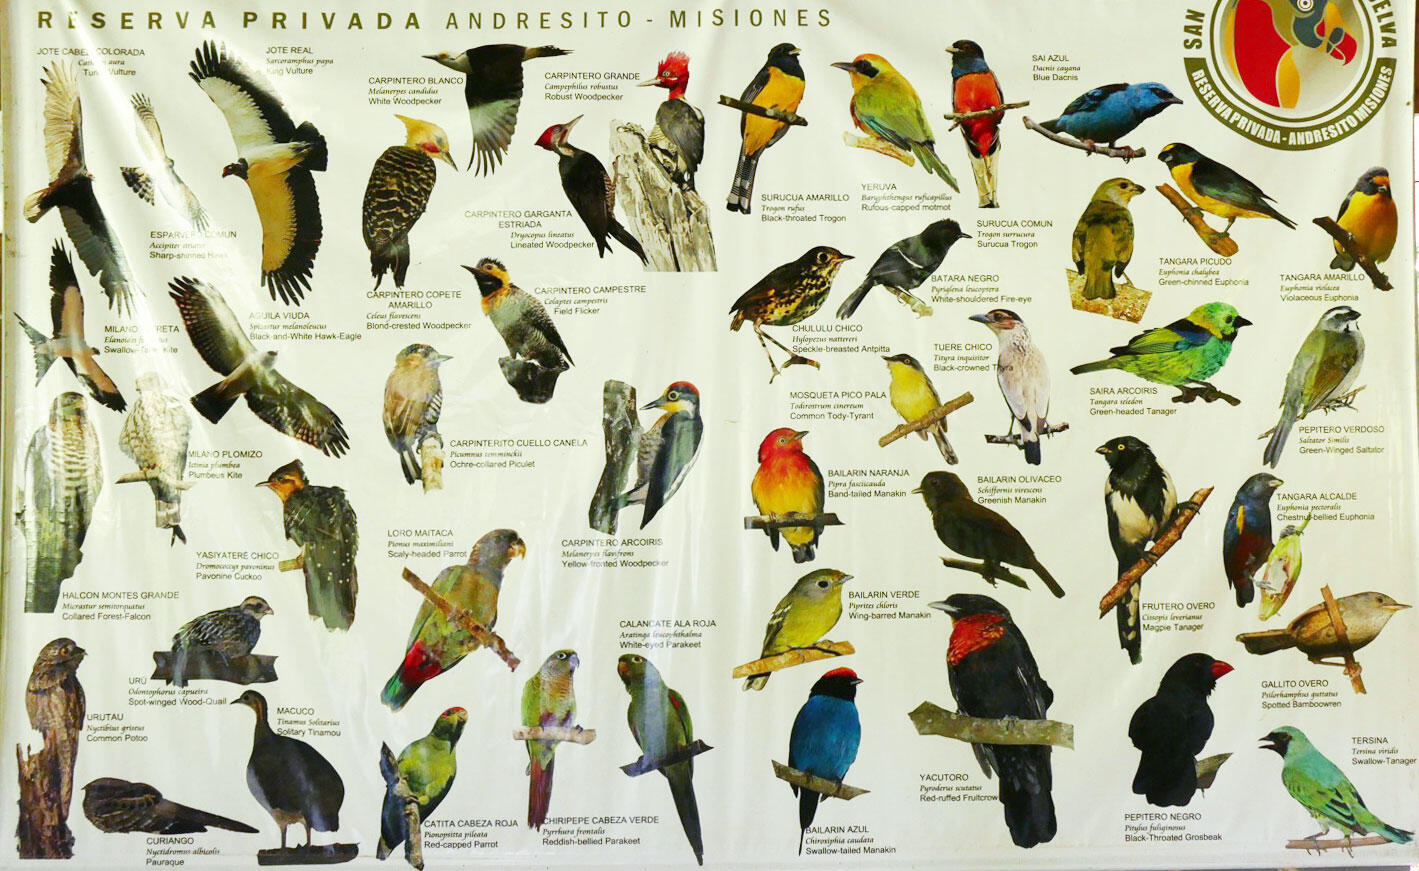 New World Record Set For Most Species Of Birds Seen In One